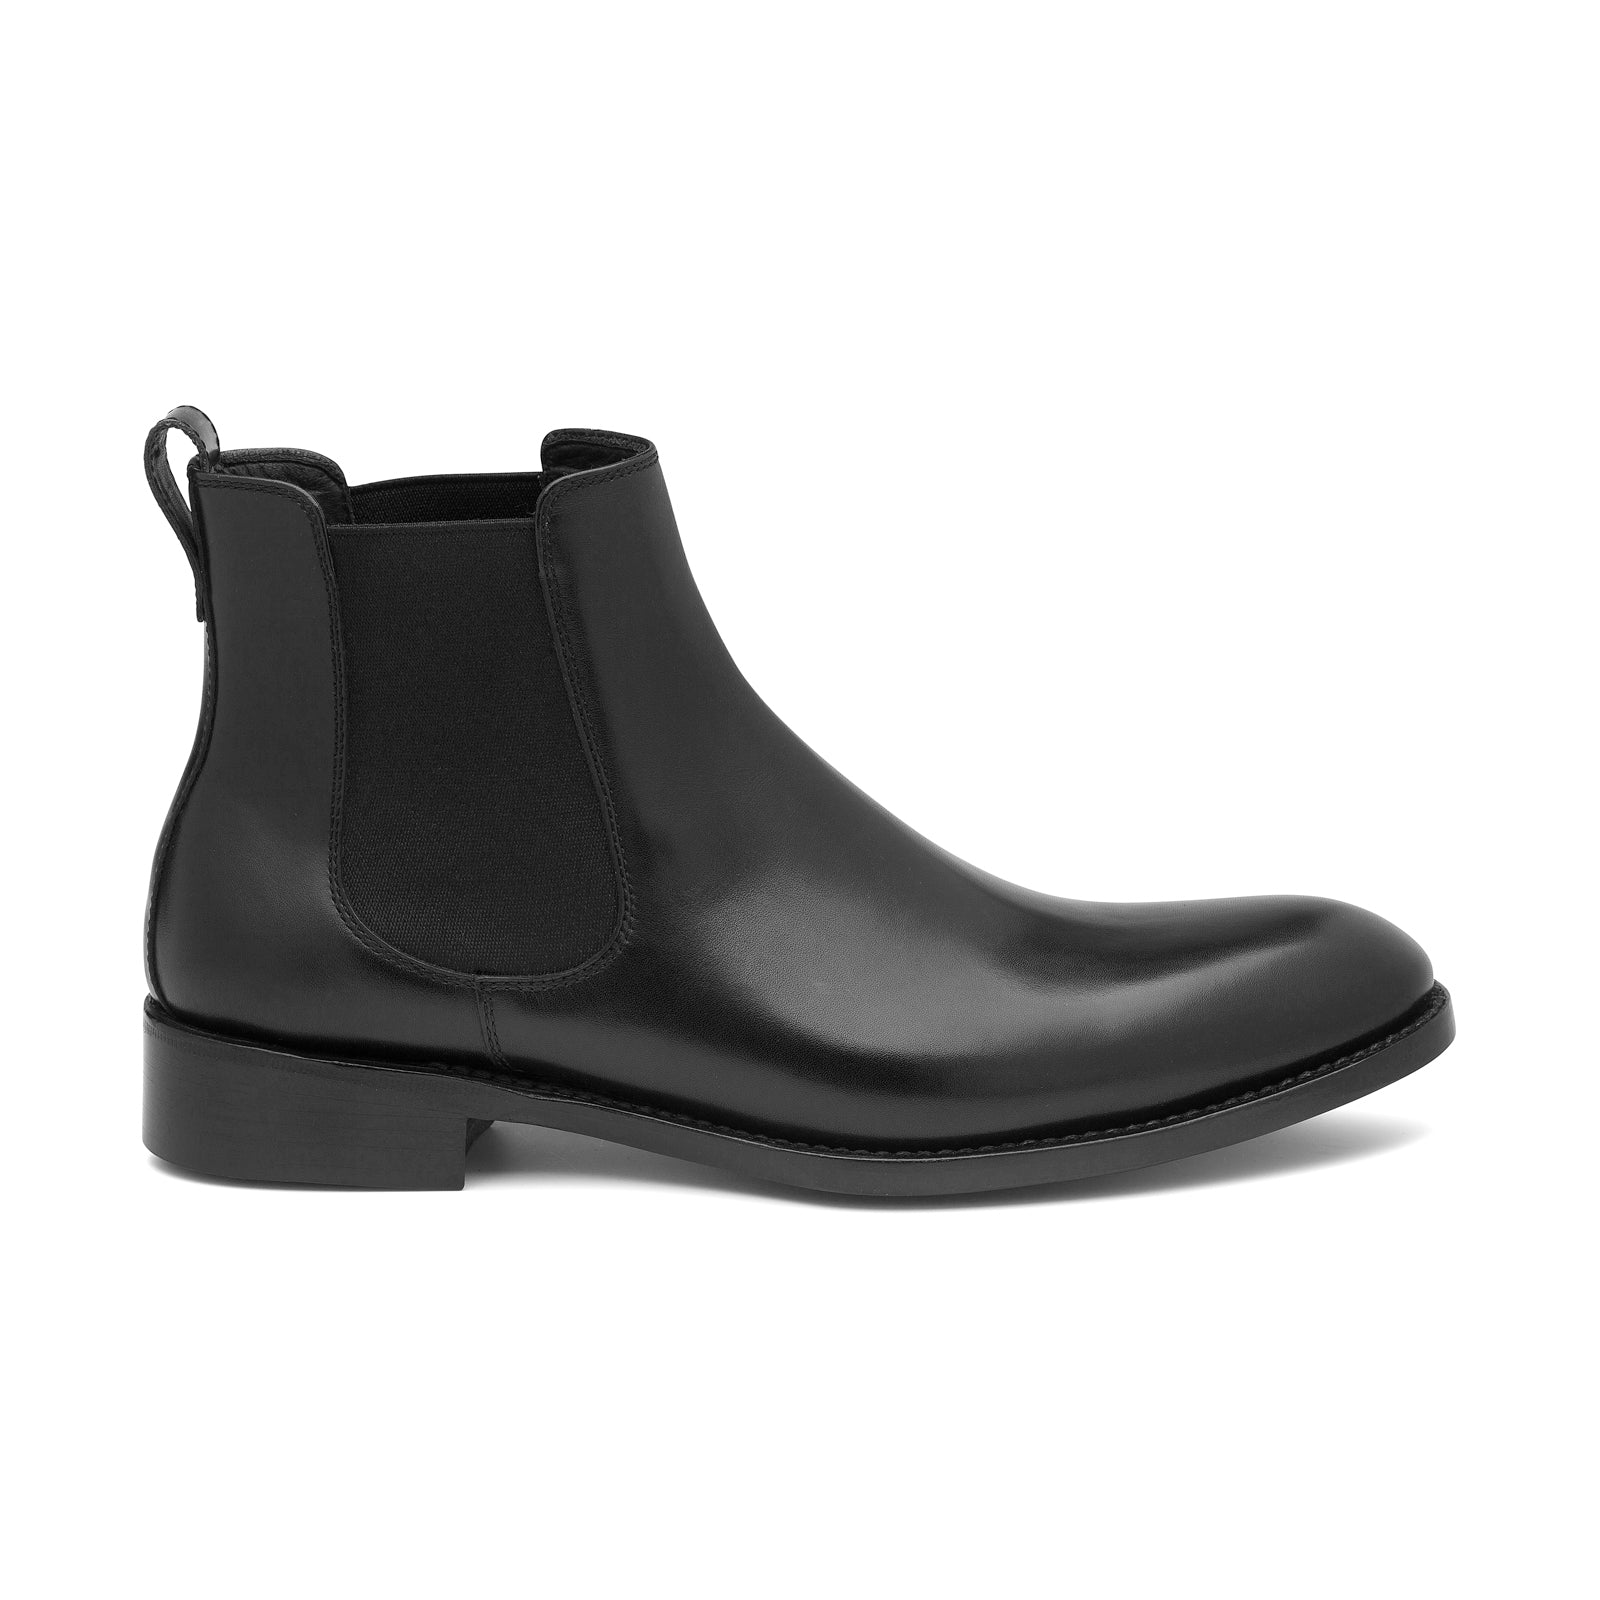 Walter Leather Chelsea Boots Salle Priv</ototo></div>                                   <span></span>                               </div>             <section>                                     <ul>                                             <li>                         Follow us on:                     </li>                                         </ul>                                     <a href=